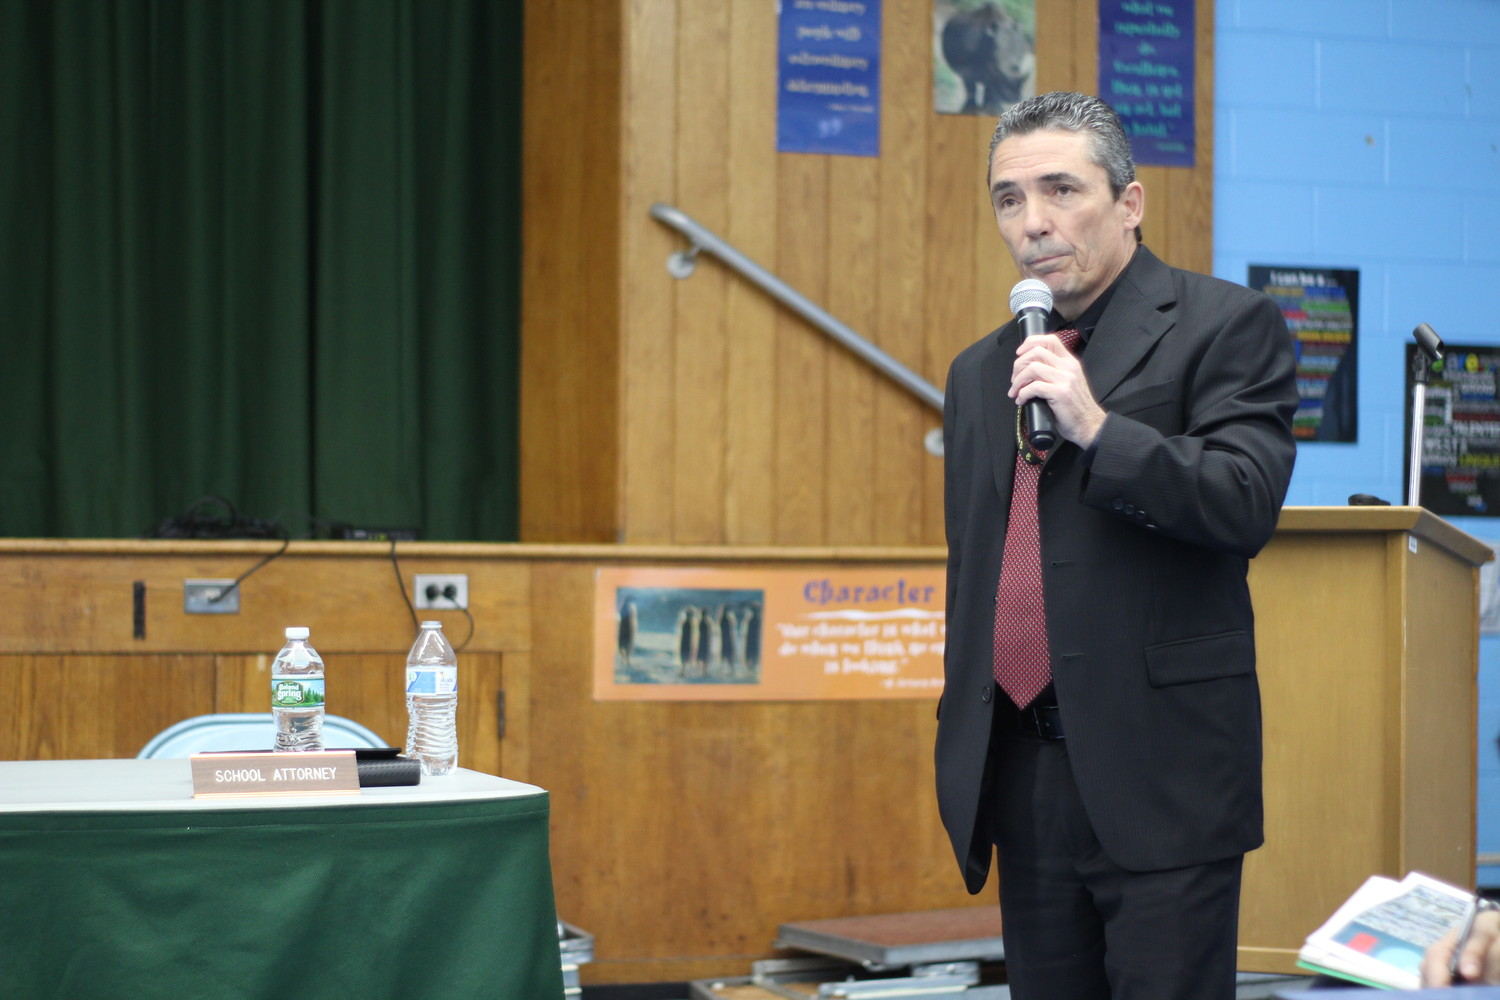 Don Flynn, president and founder of Covert Investigations, gave a presentation at a Seaford Board of Education meeting in April about recommendations for safety and security at the schools. Covert is also the security consultant for Massapequa Schools.